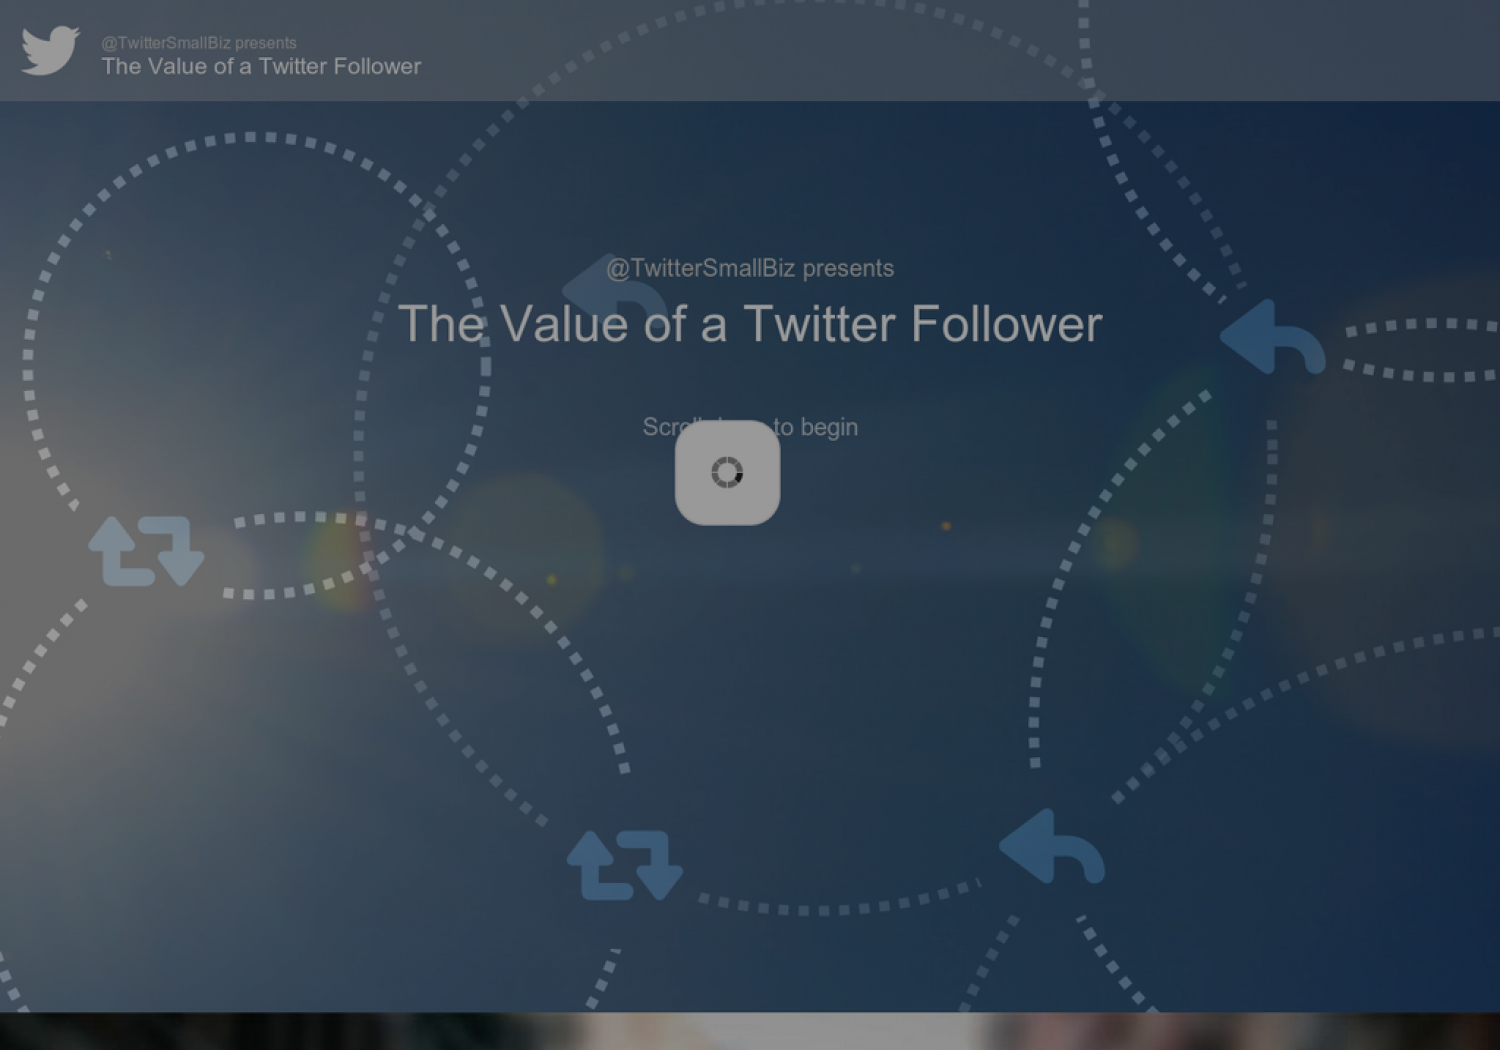 The Value of a Twitter follower Infographic